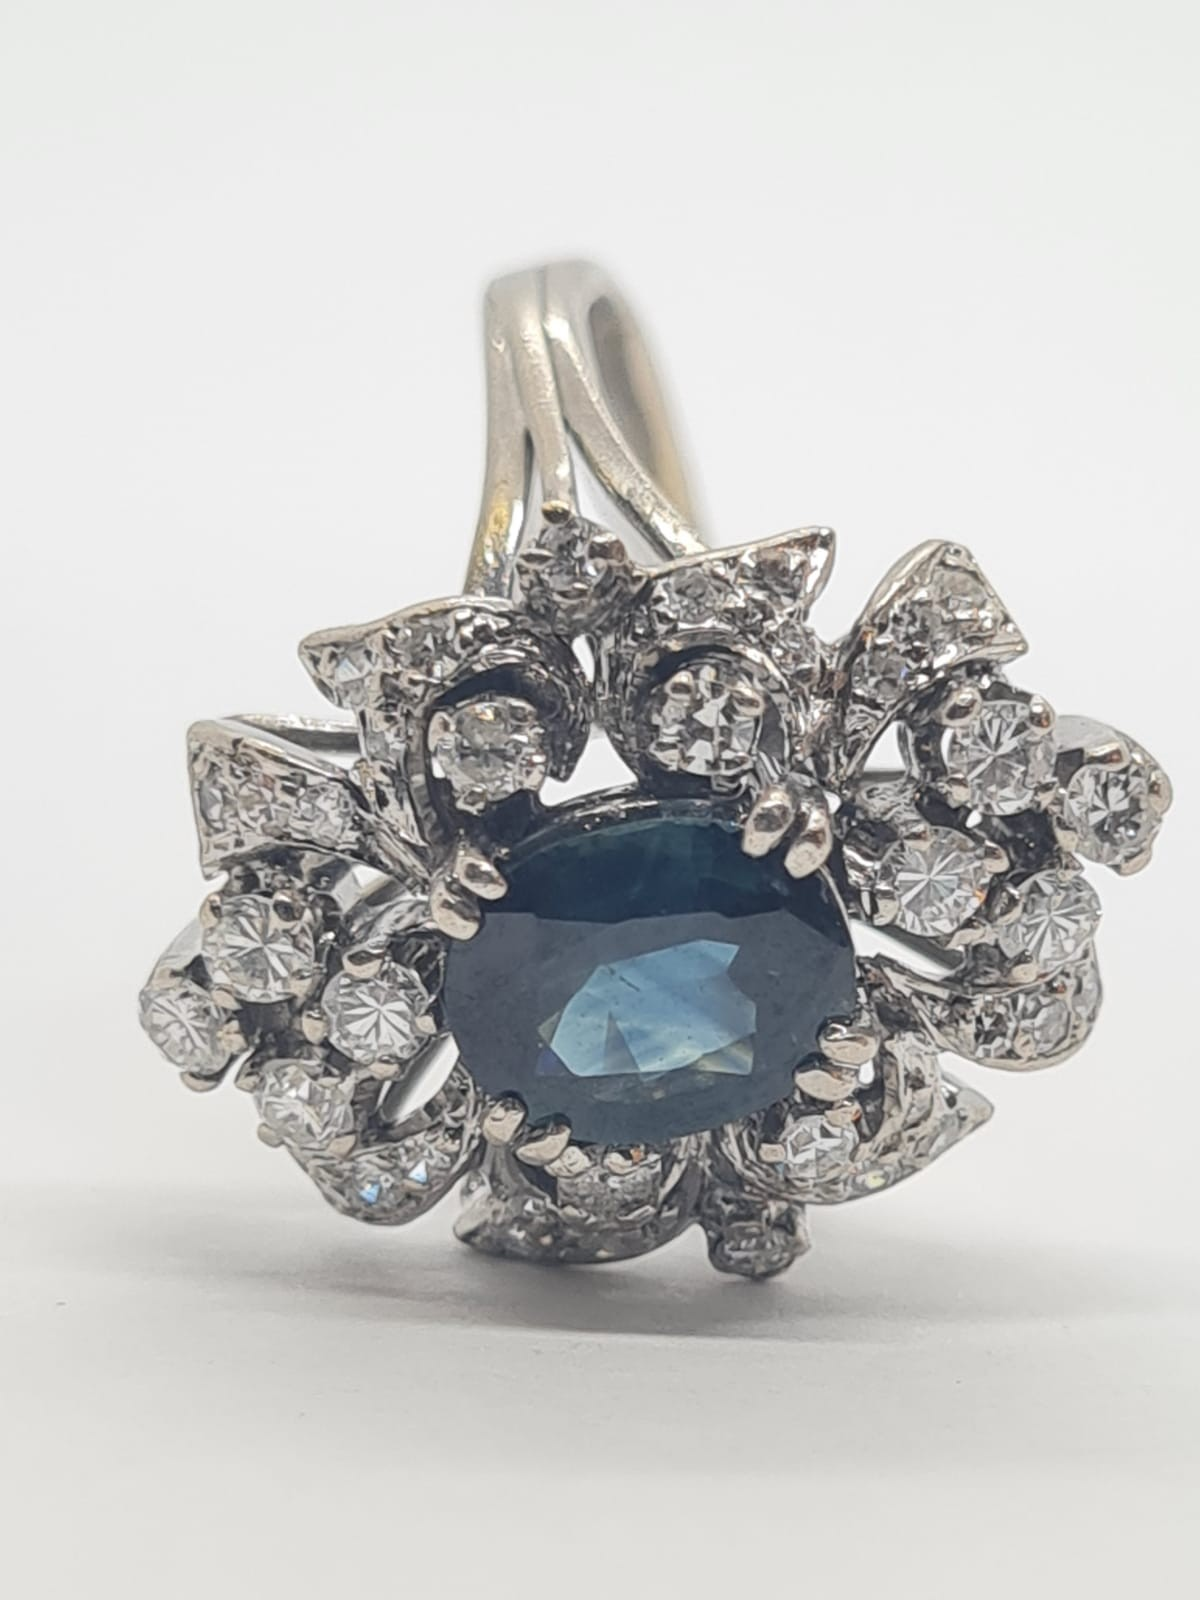 14k white gold diamond cluster ring with sapphire centre marked Tiffany & Co , weight 6.2g and - Image 5 of 7